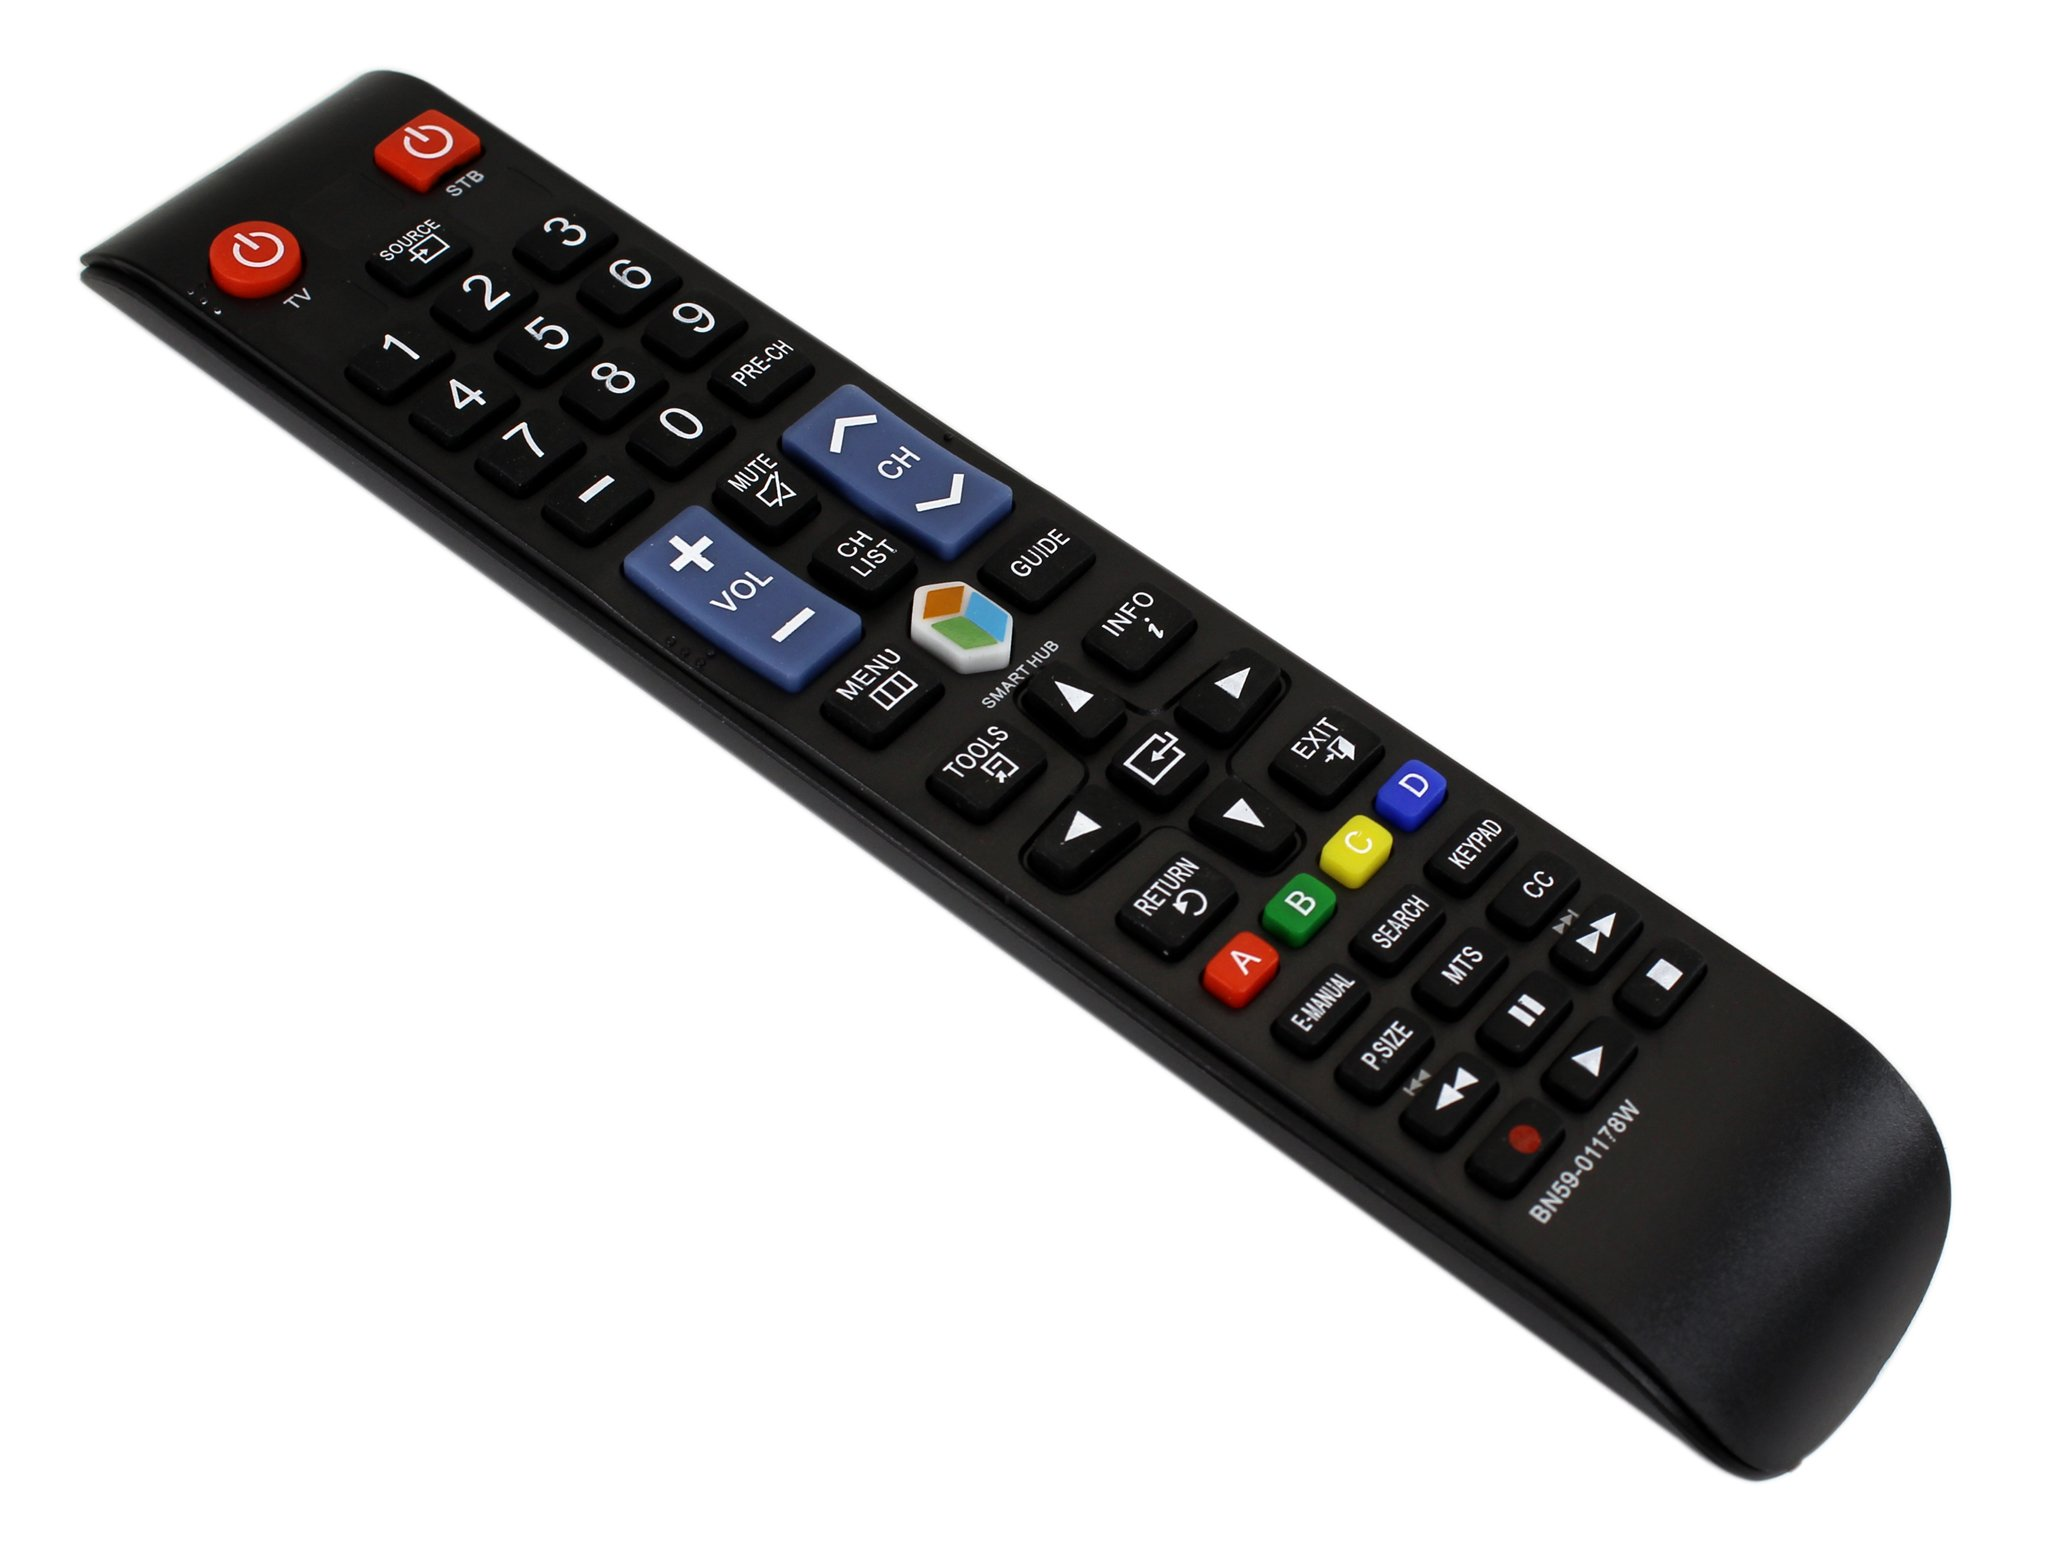 RMTECH BN59-01178W Universal Remote Control Replacement for Samsung LED LCD Smart TV by RMTECH